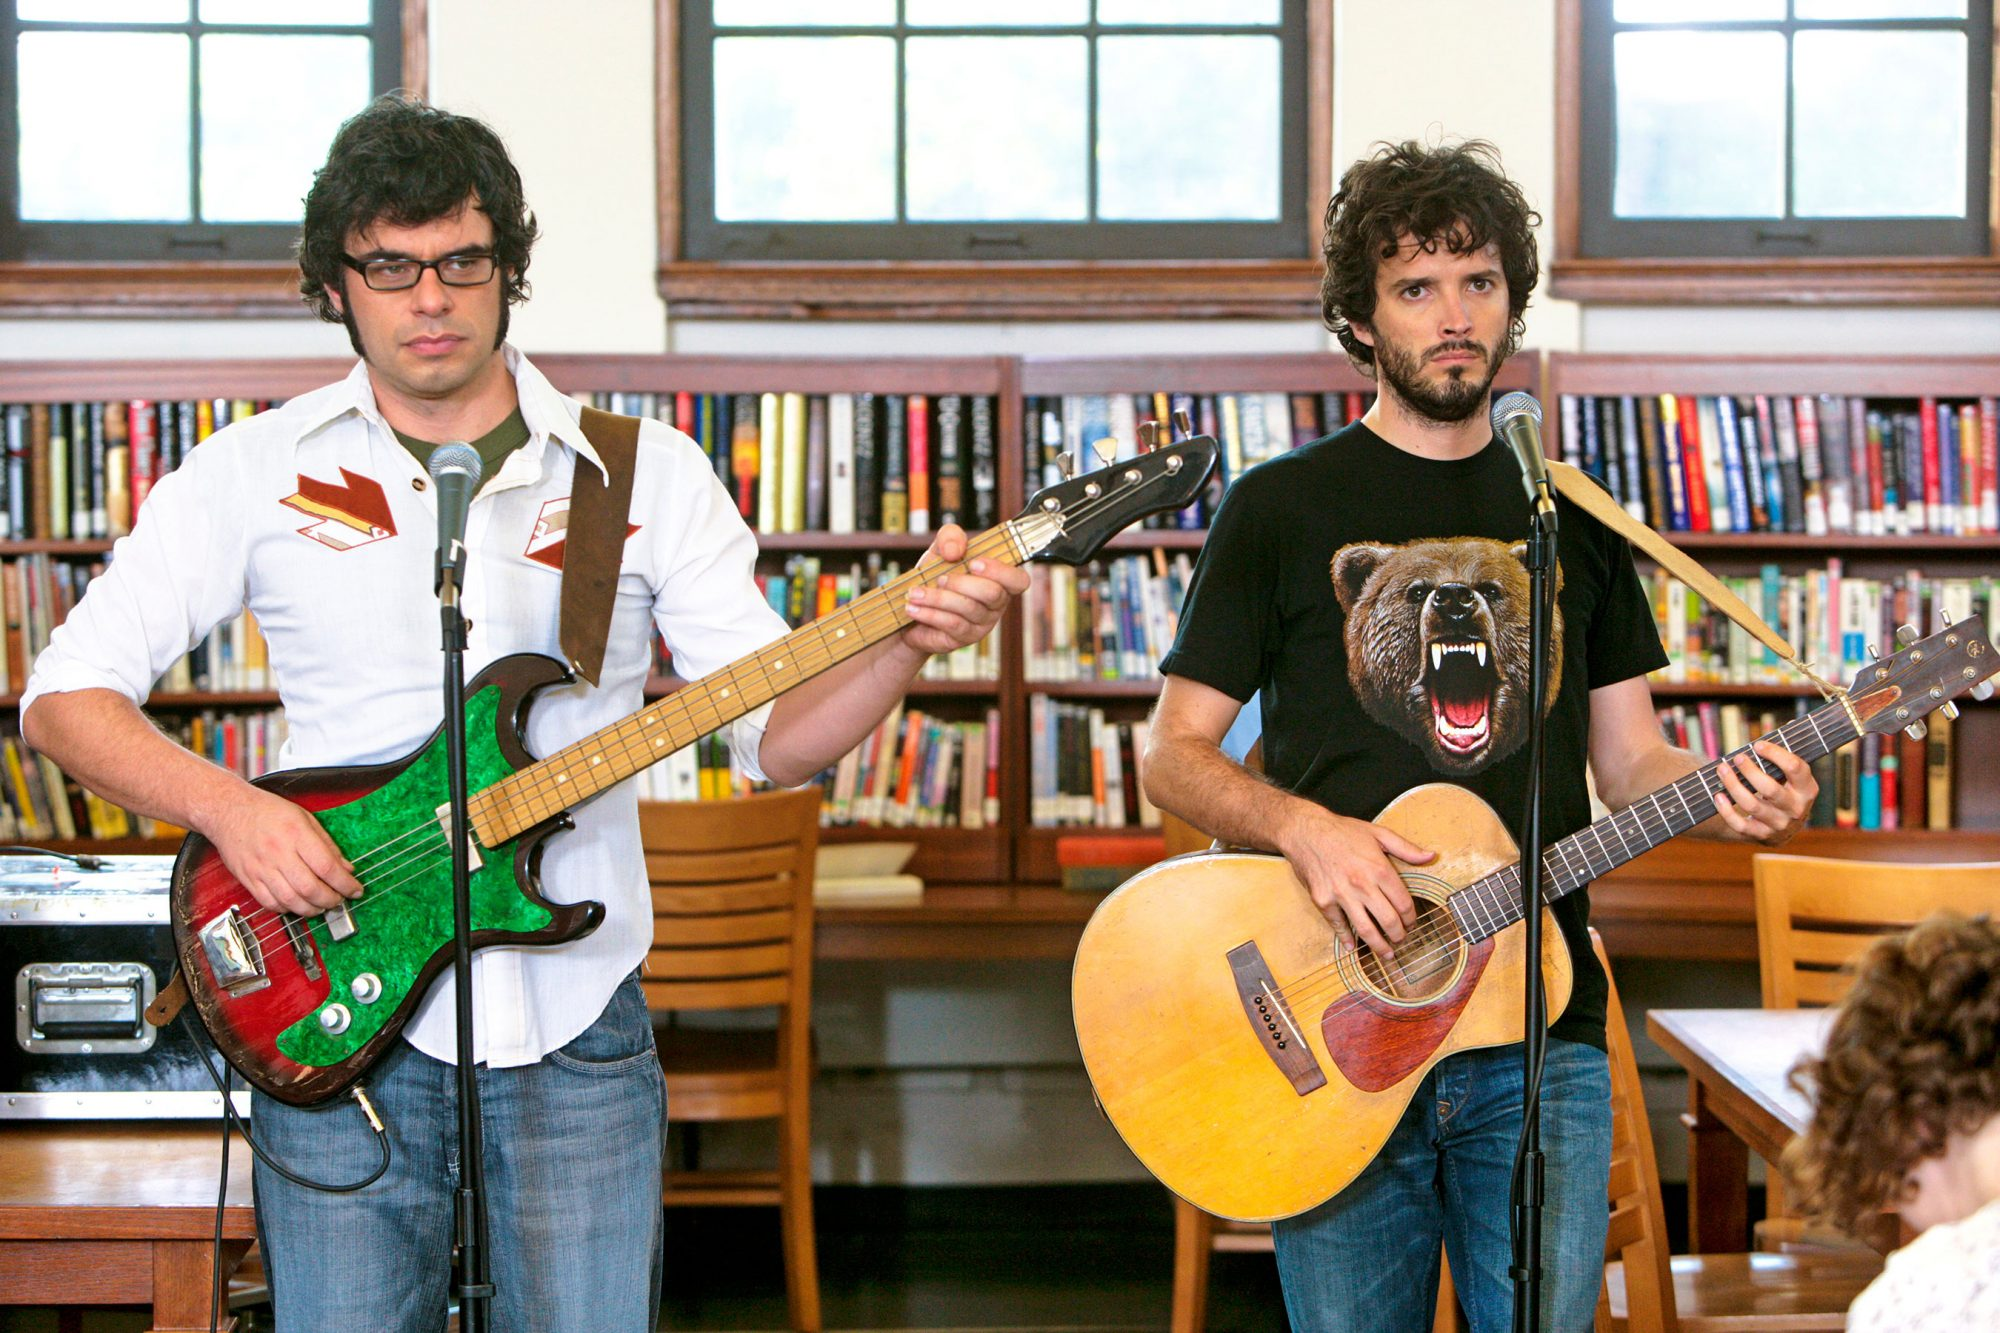 FLIGHT OF THE CONCHORDS Jemaine Clement, Bret McKenzie.